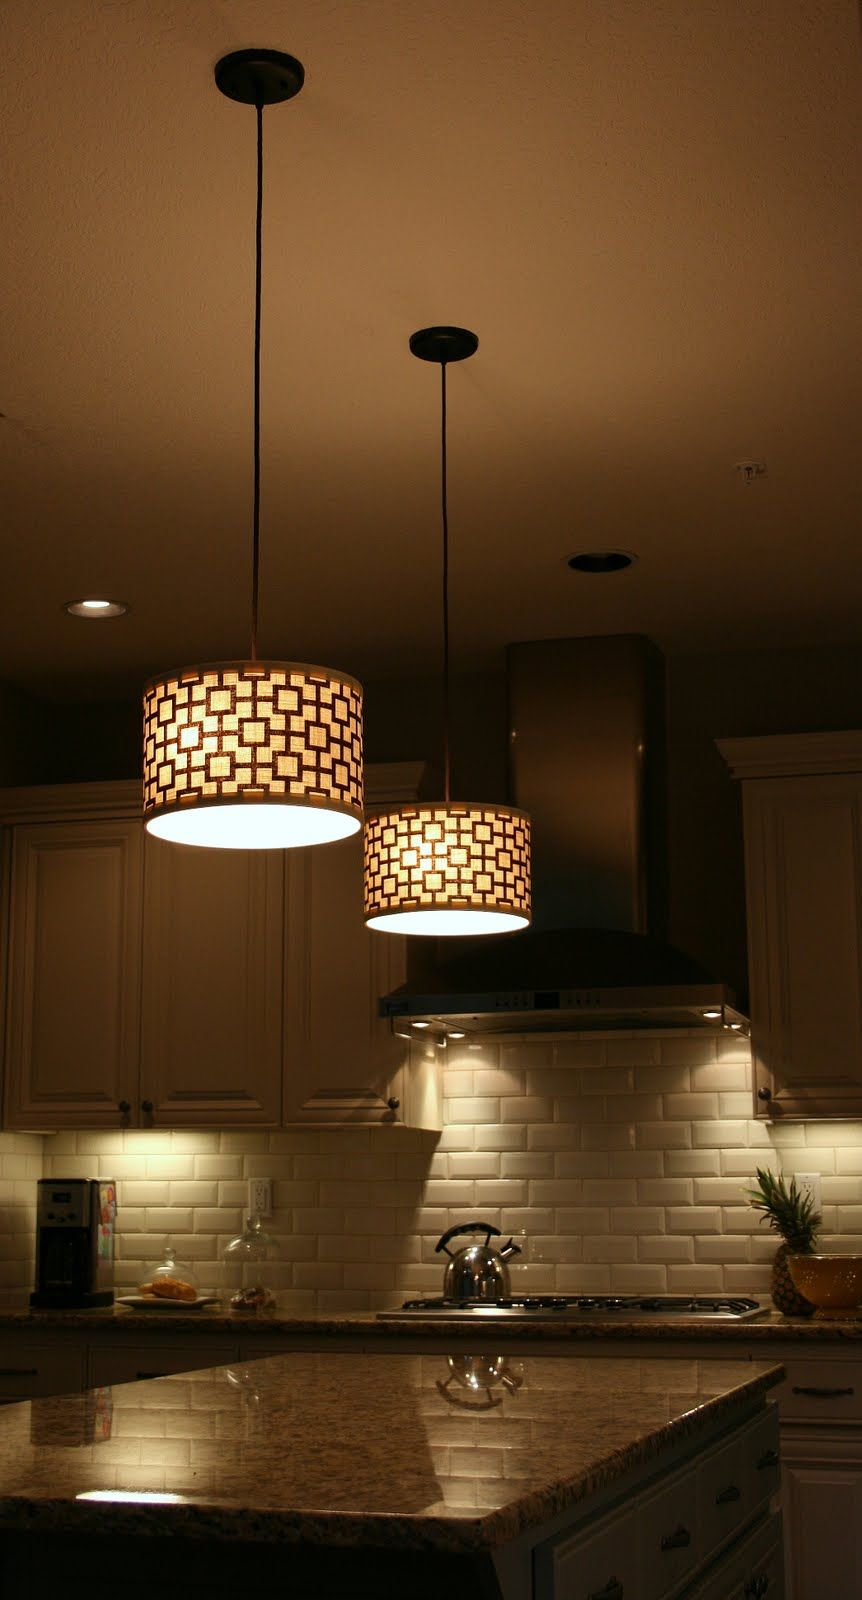 1000 images about pendant lights on pinterest pendant lights pendant lighting and pendants lighting pendants